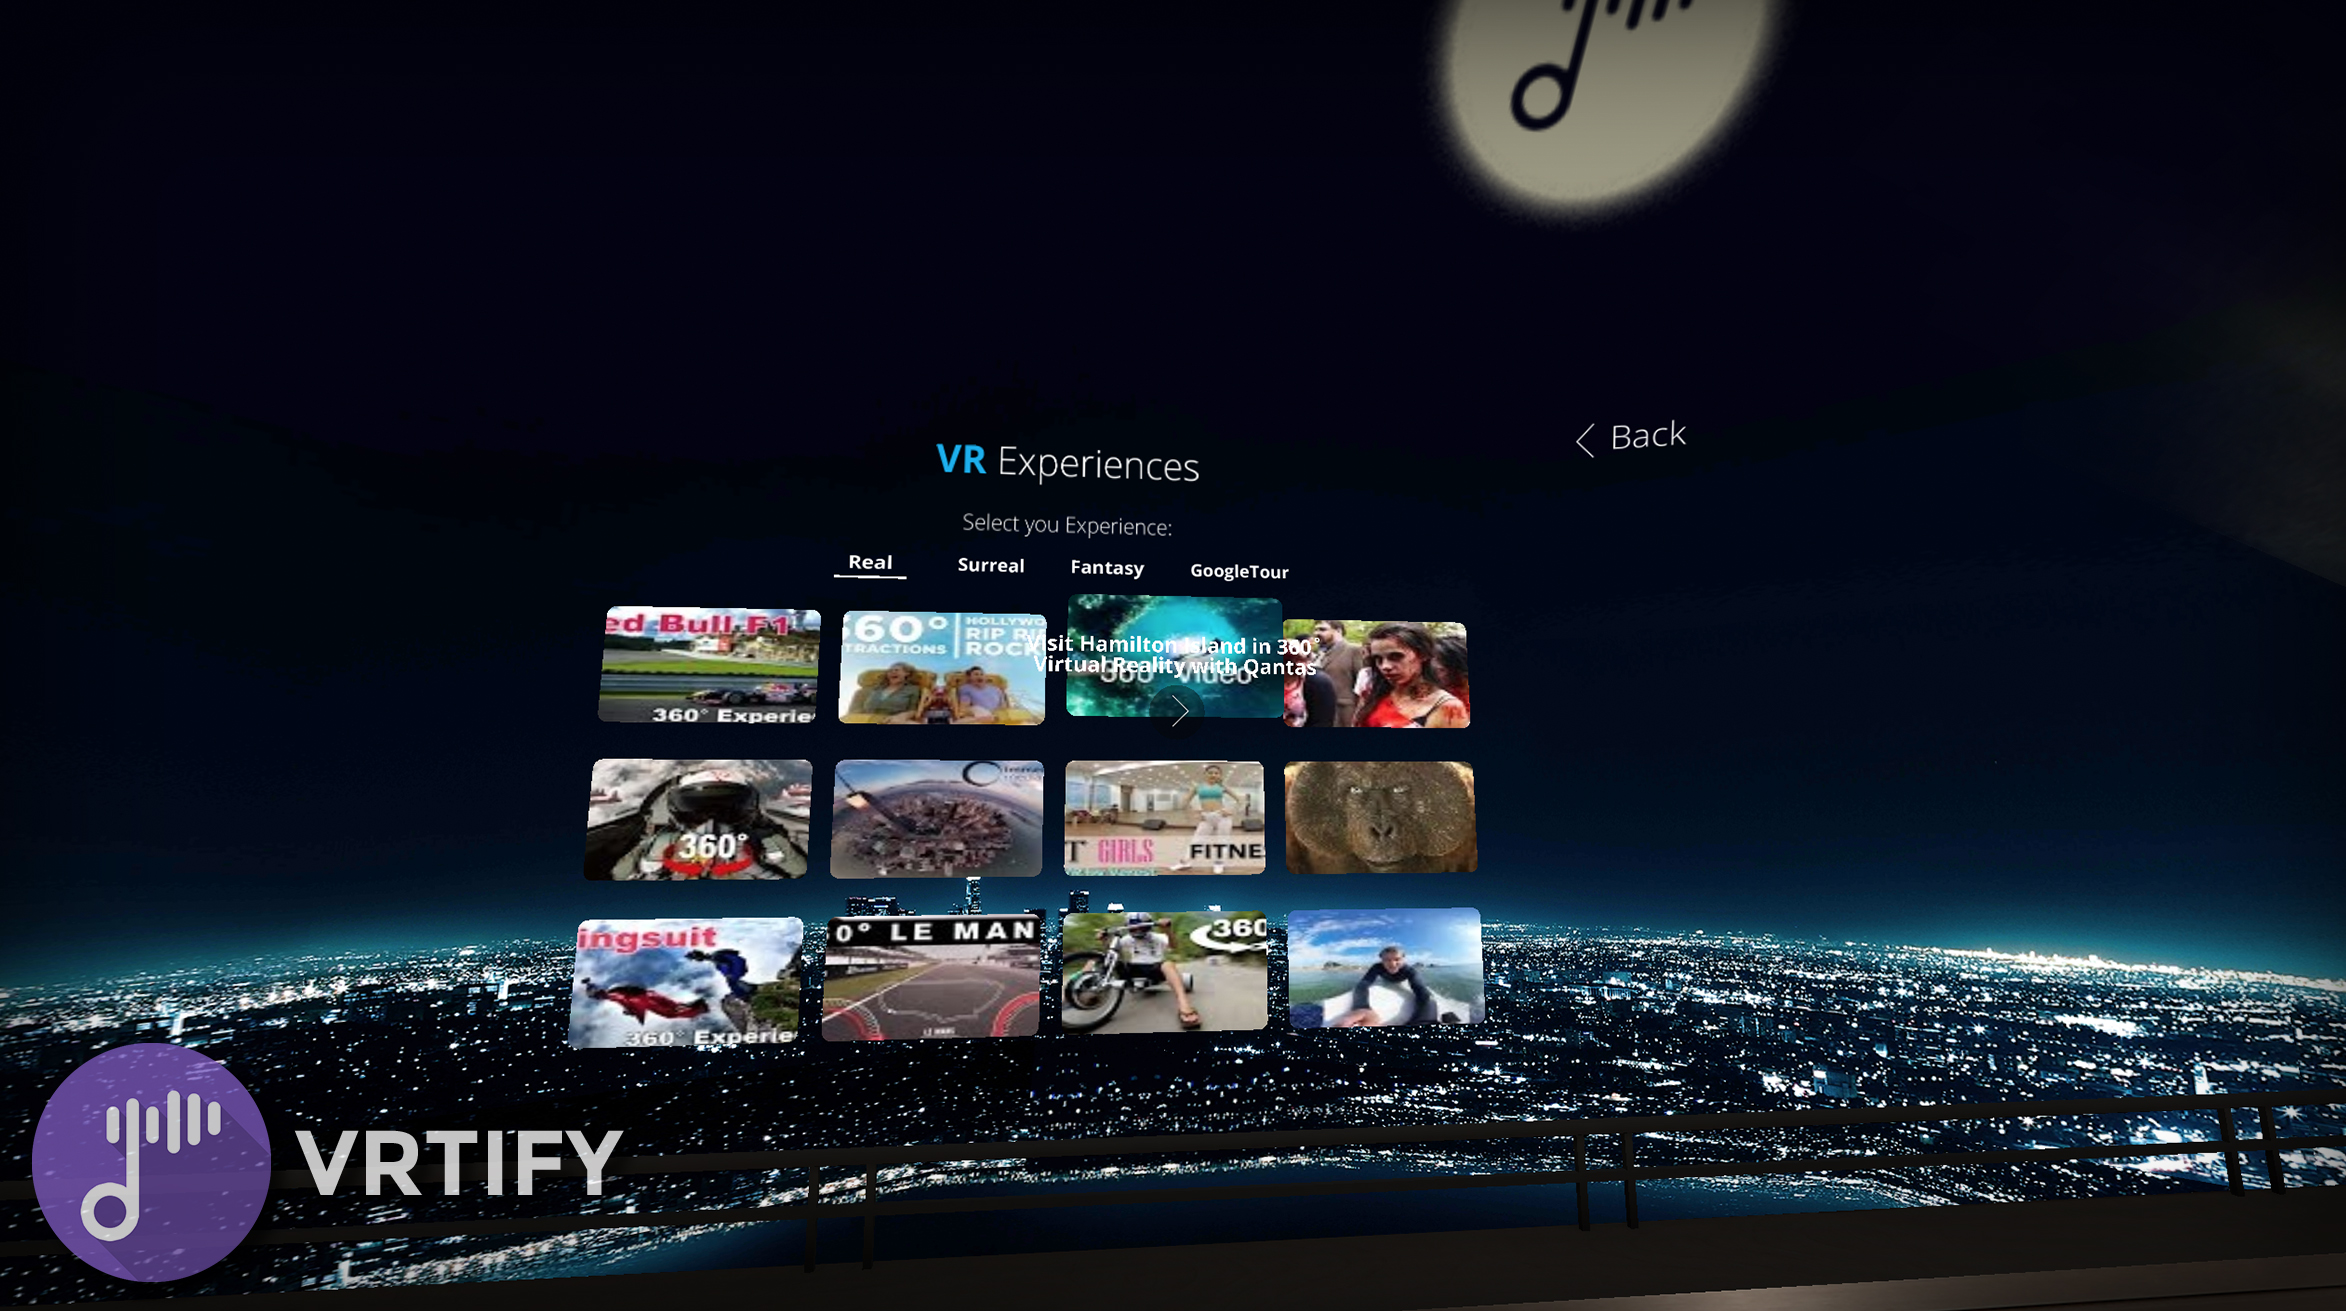 VRTIFY Wants To Bring You Closer To Live Music Performances In VR